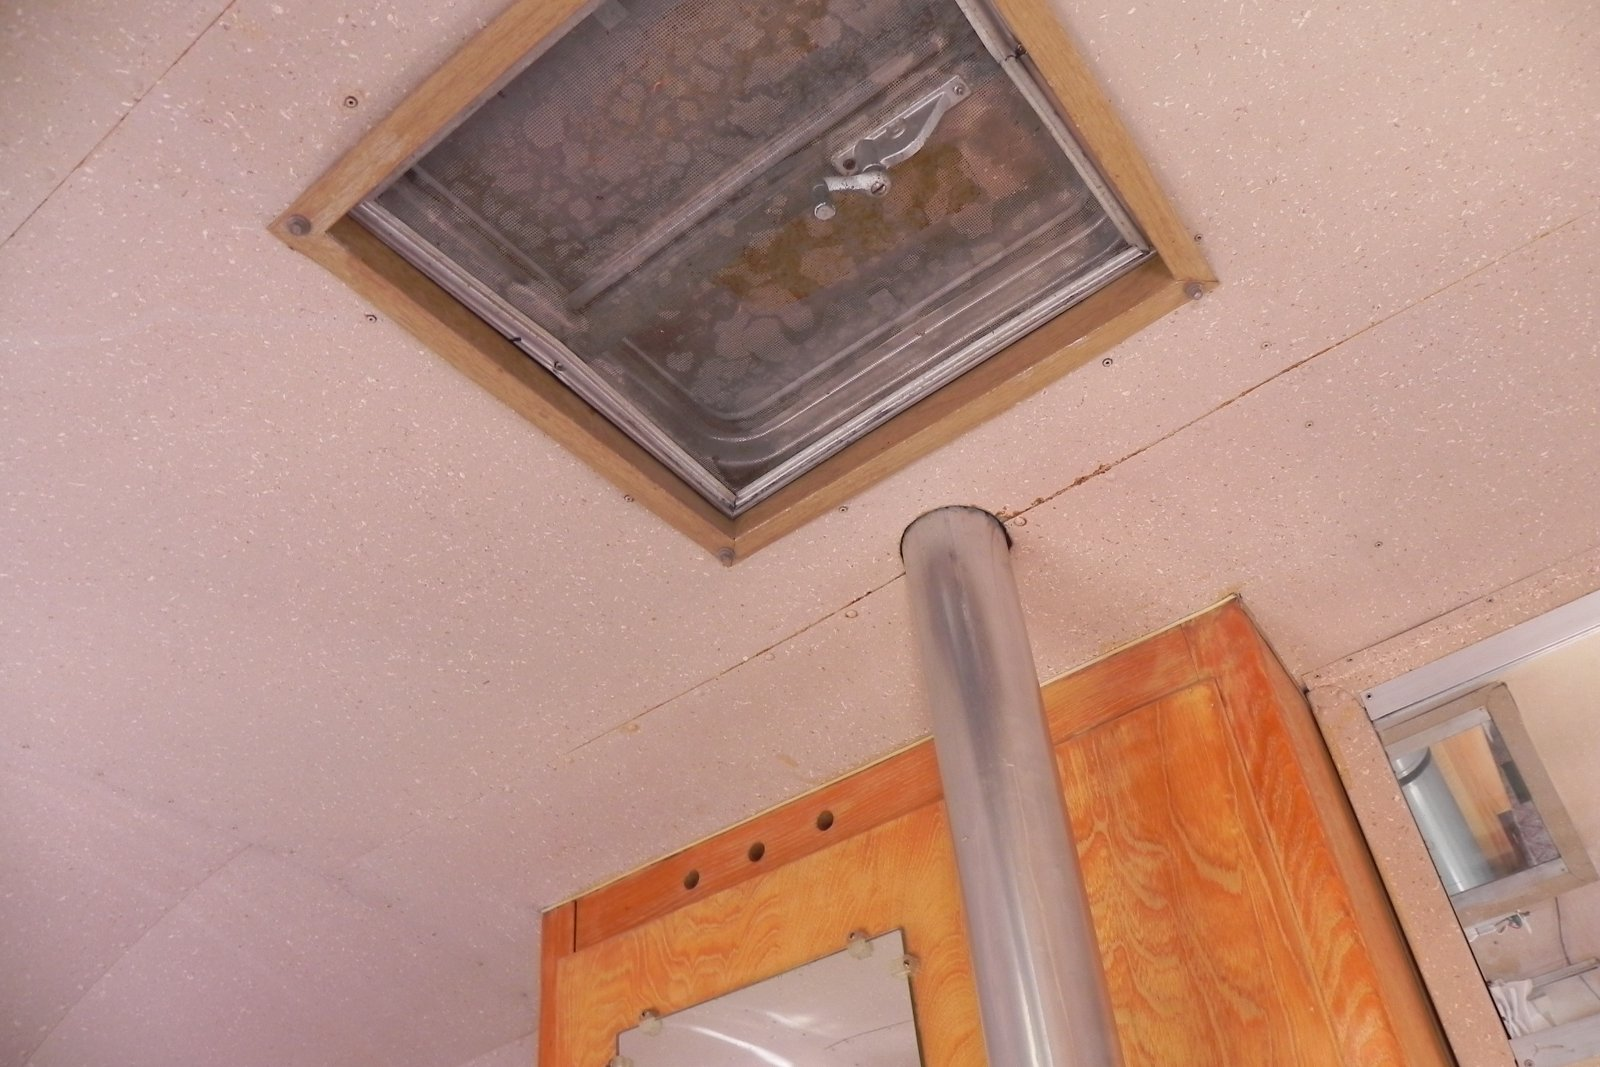 Click image for larger version  Name:ceiling vent and furnace chimney.jpg Views:135 Size:251.9 KB ID:172960